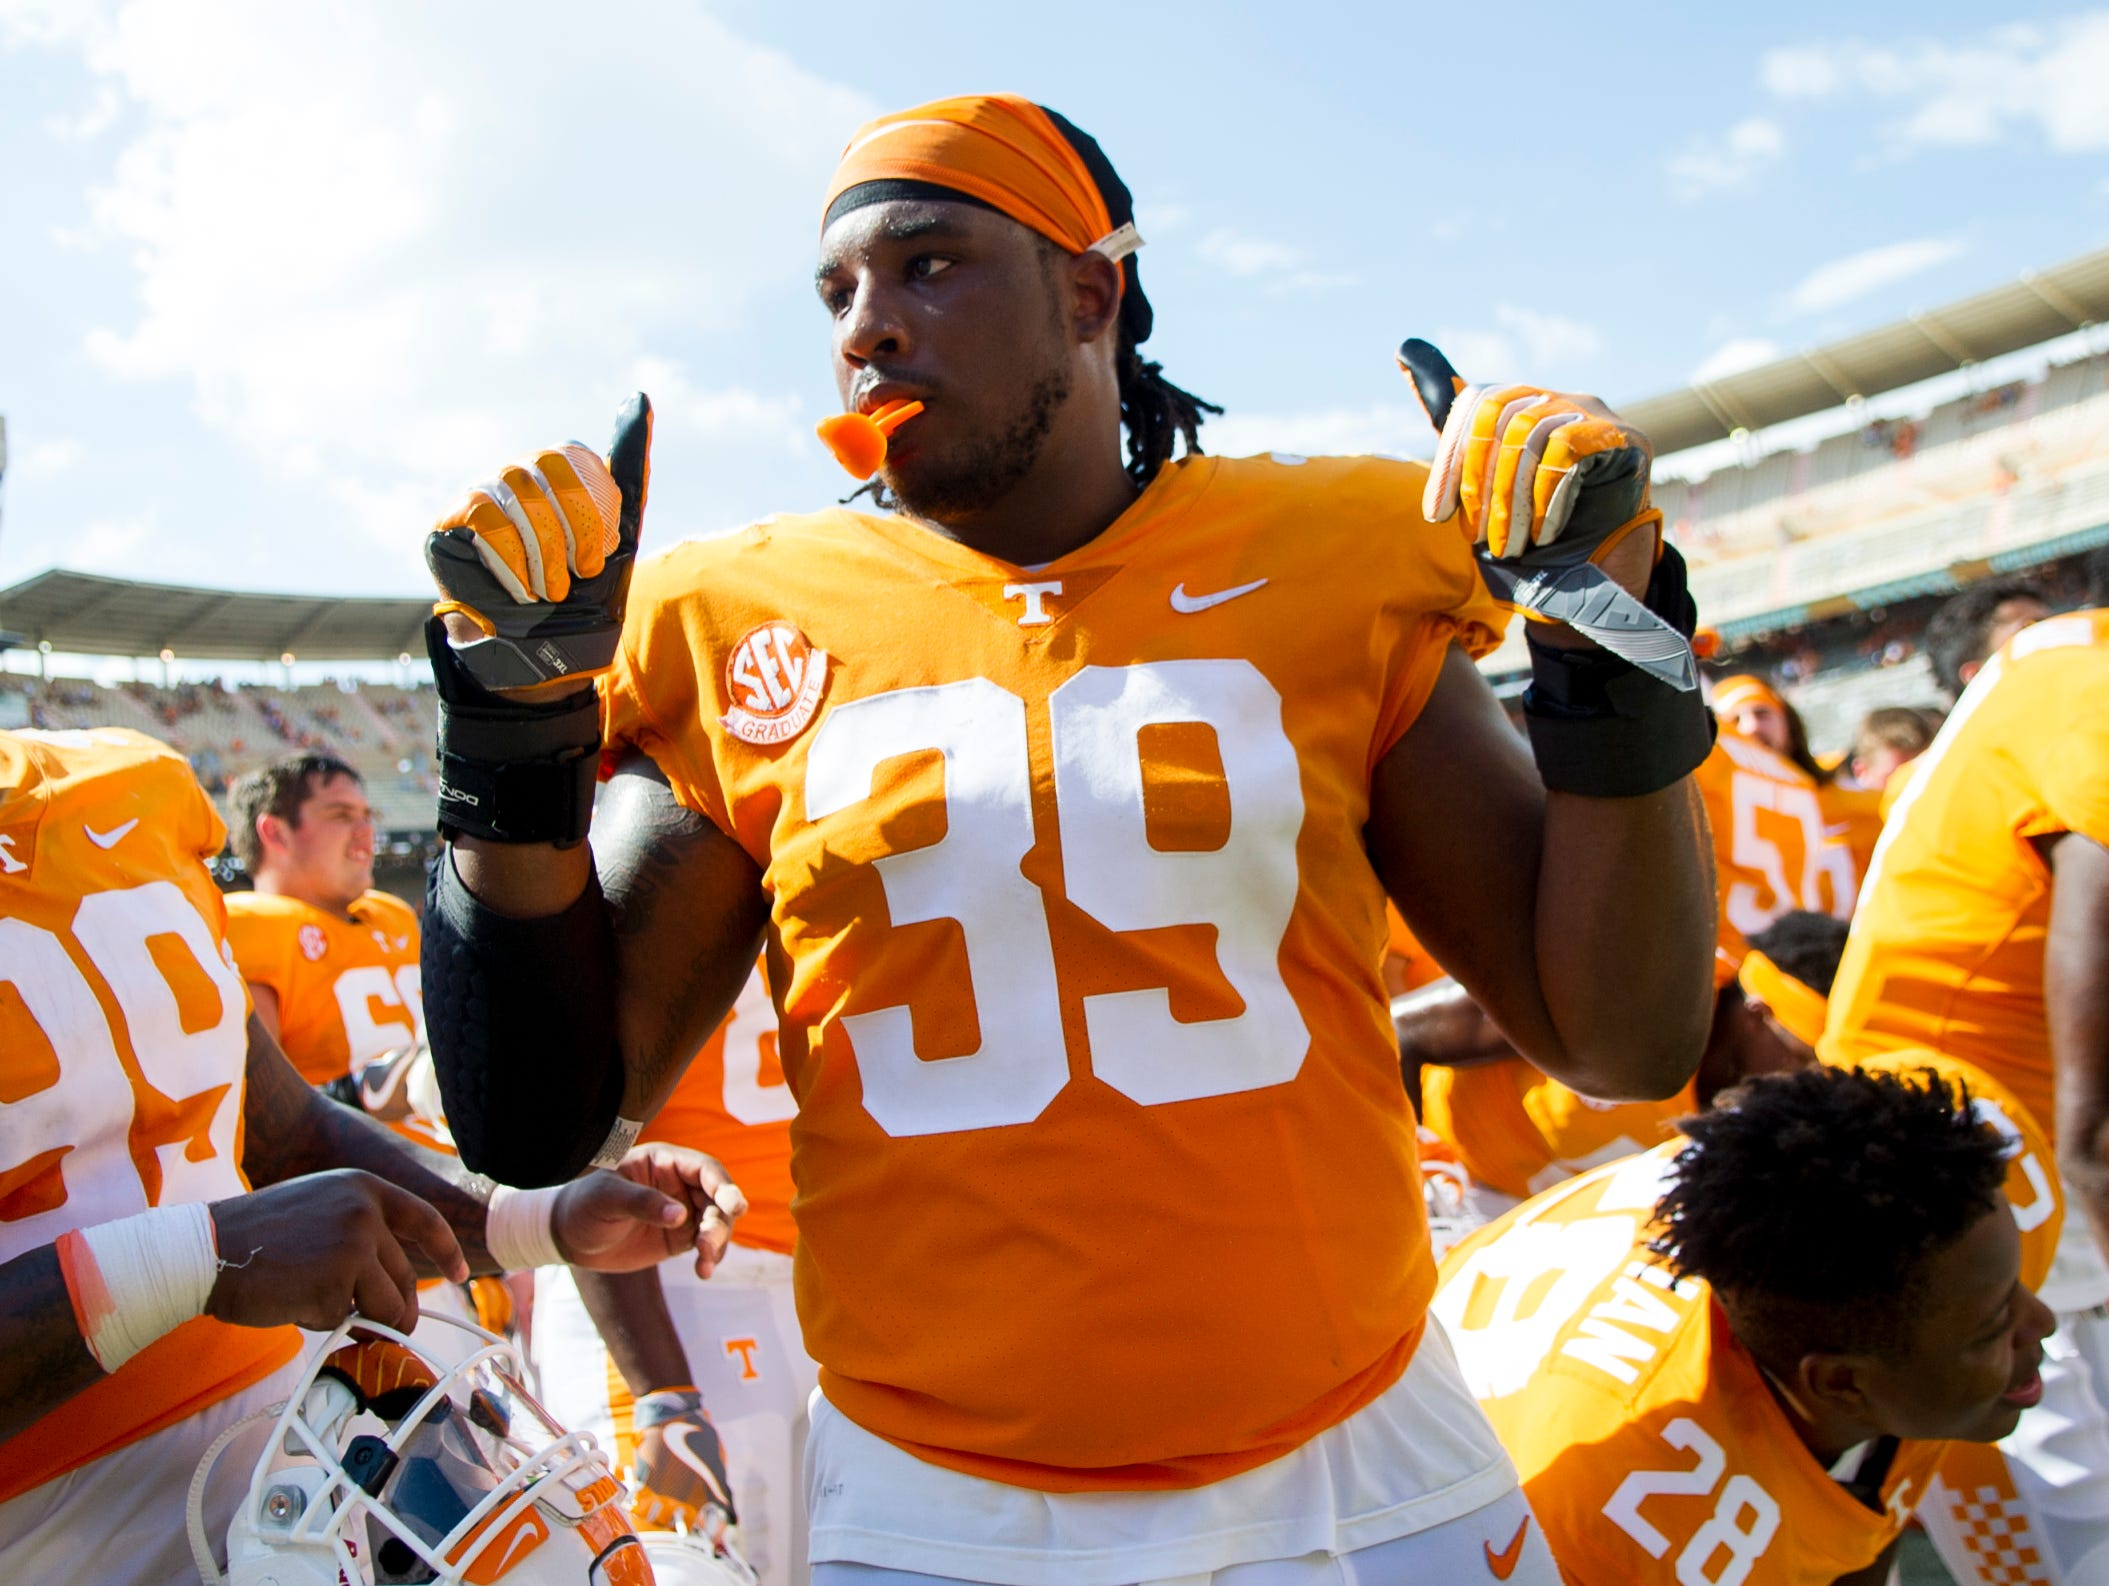 Tennessee defensive lineman Kendal Vickers (39) celebrates after Tennessee's 17-13 win against UMass in Neyland Stadium on Saturday, Sept. 23, 2017.